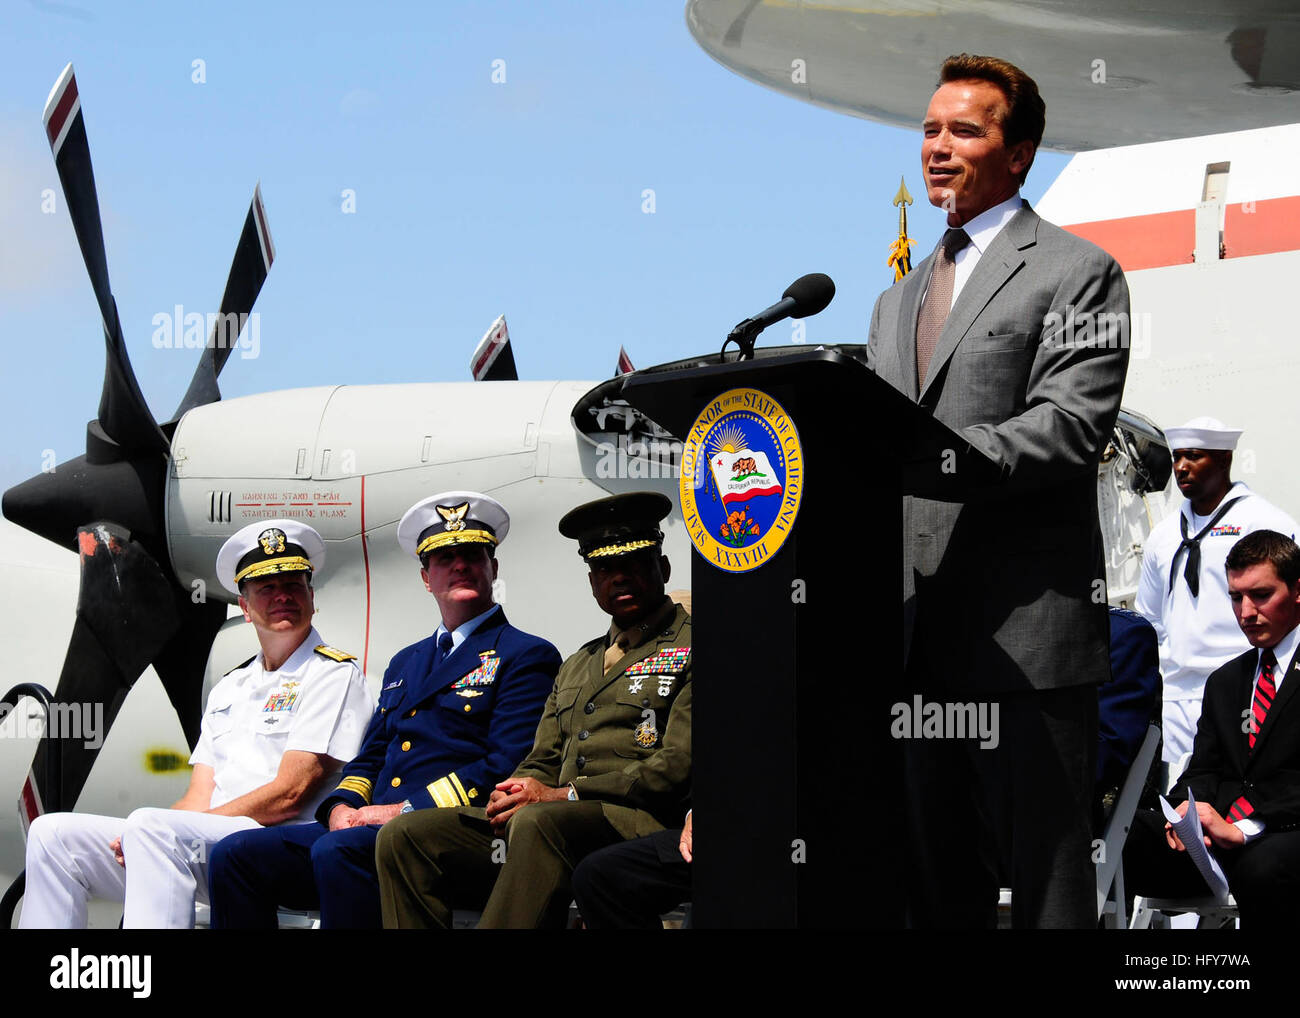 100603-N-8607R-069 SAN DIEGO (June 3, 2010) California Governor Arnold Schwarzenegger addresses veterans aboard - Stock Image